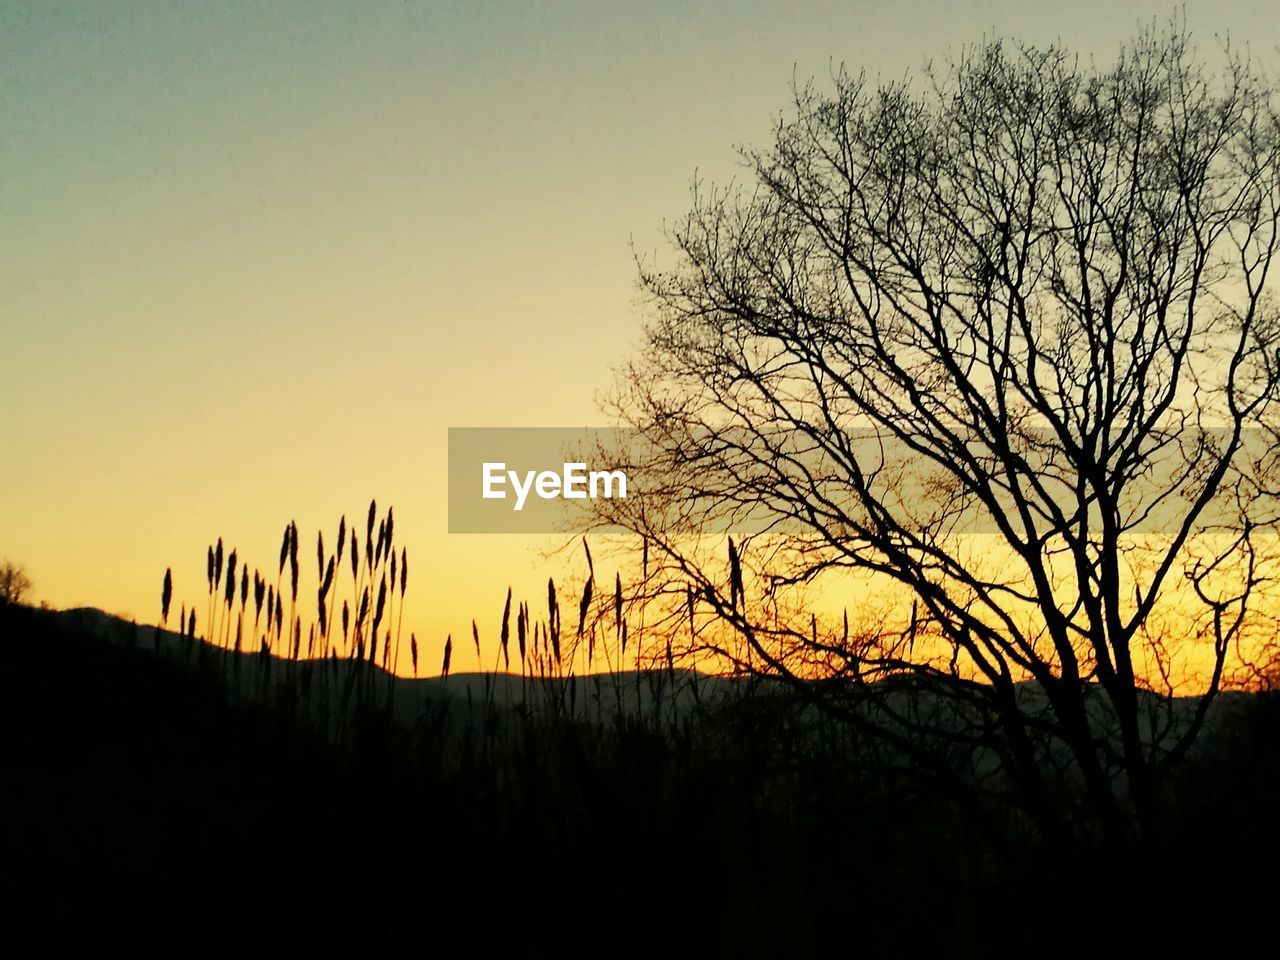 sunset, silhouette, beauty in nature, nature, scenics, tree, tranquility, tranquil scene, bare tree, sky, no people, outdoors, landscape, branch, clear sky, day